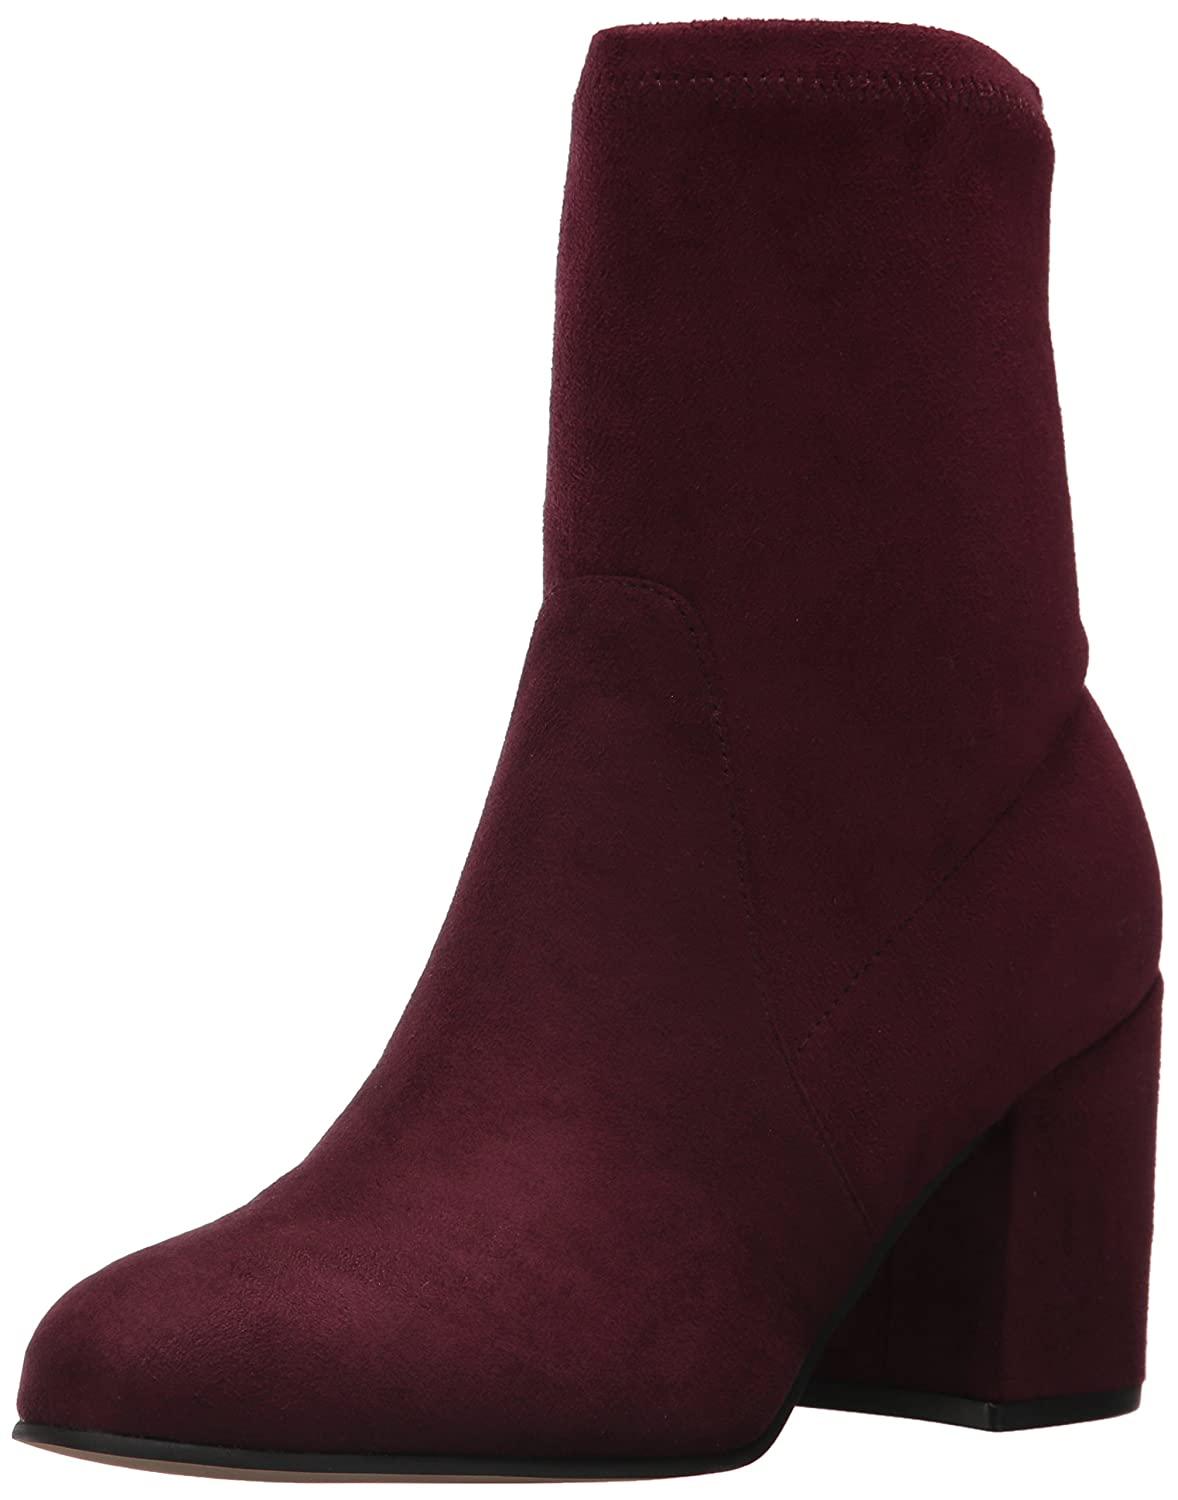 Marc Fisher Women's Ileesia Fashion Boot B06XWMRFFN 6.5 B(M) US|Burgundy